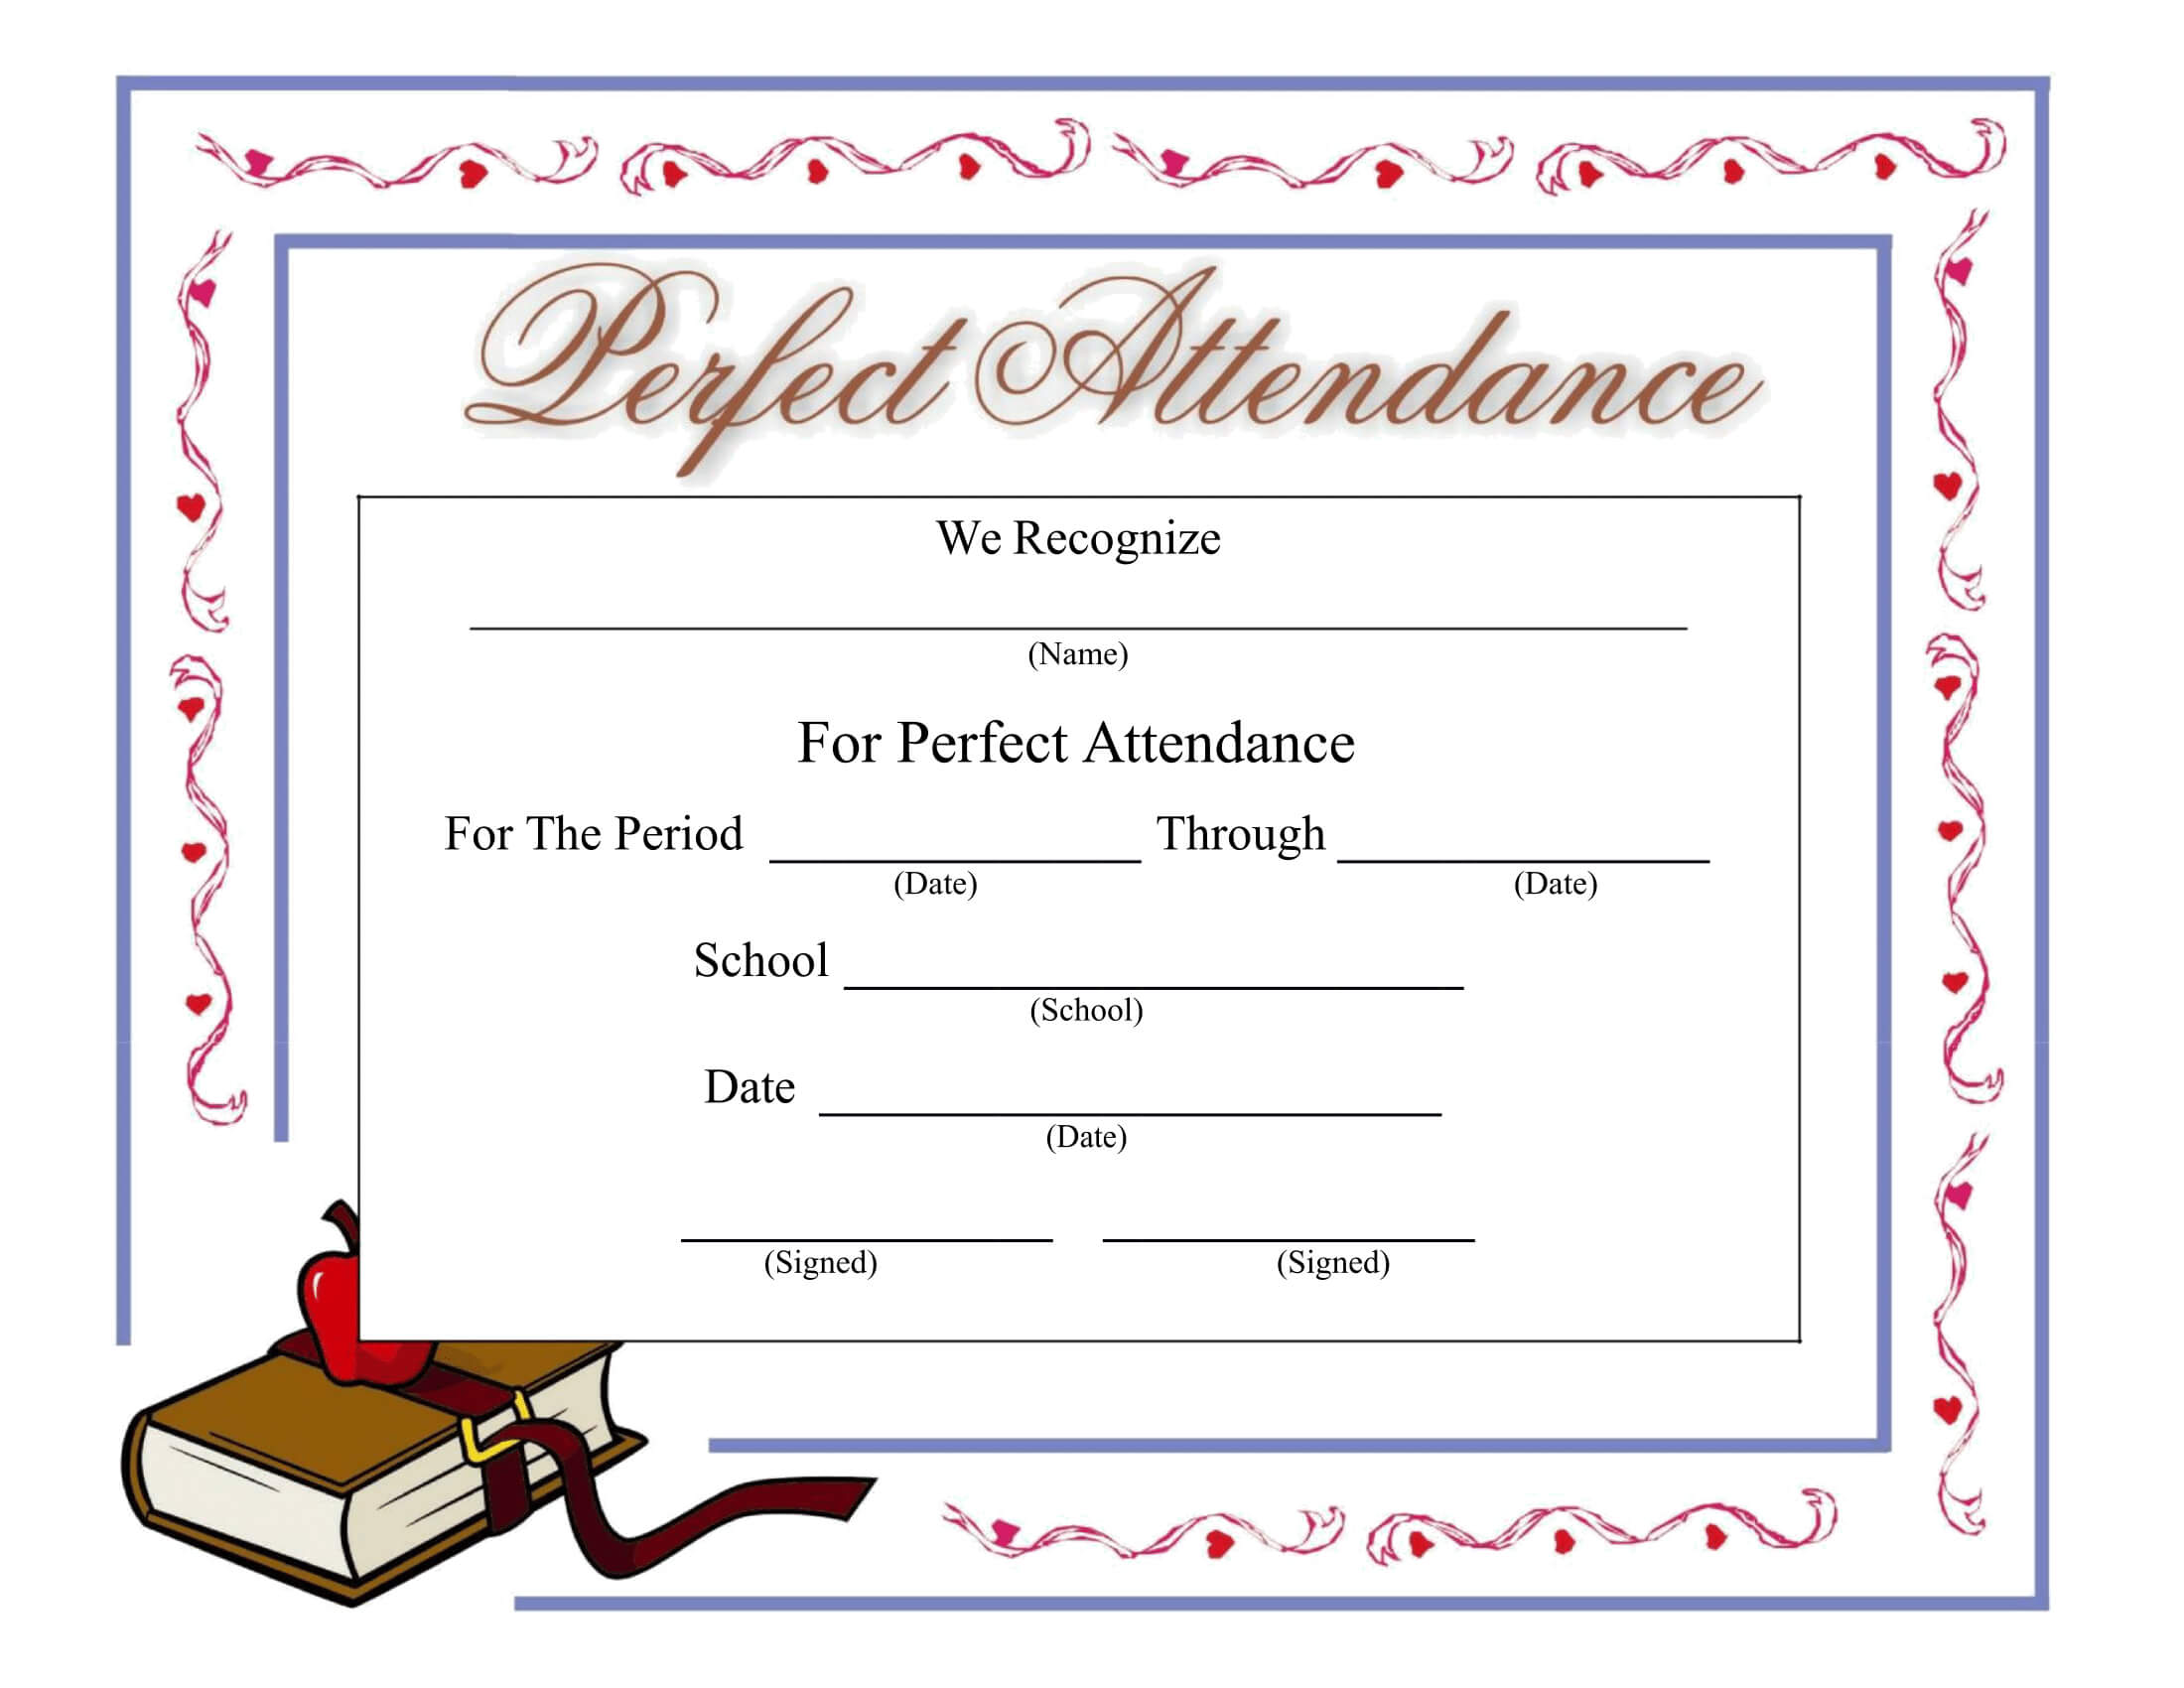 Perfect Attendance Certificate - Download A Free Template Within Perfect Attendance Certificate Template